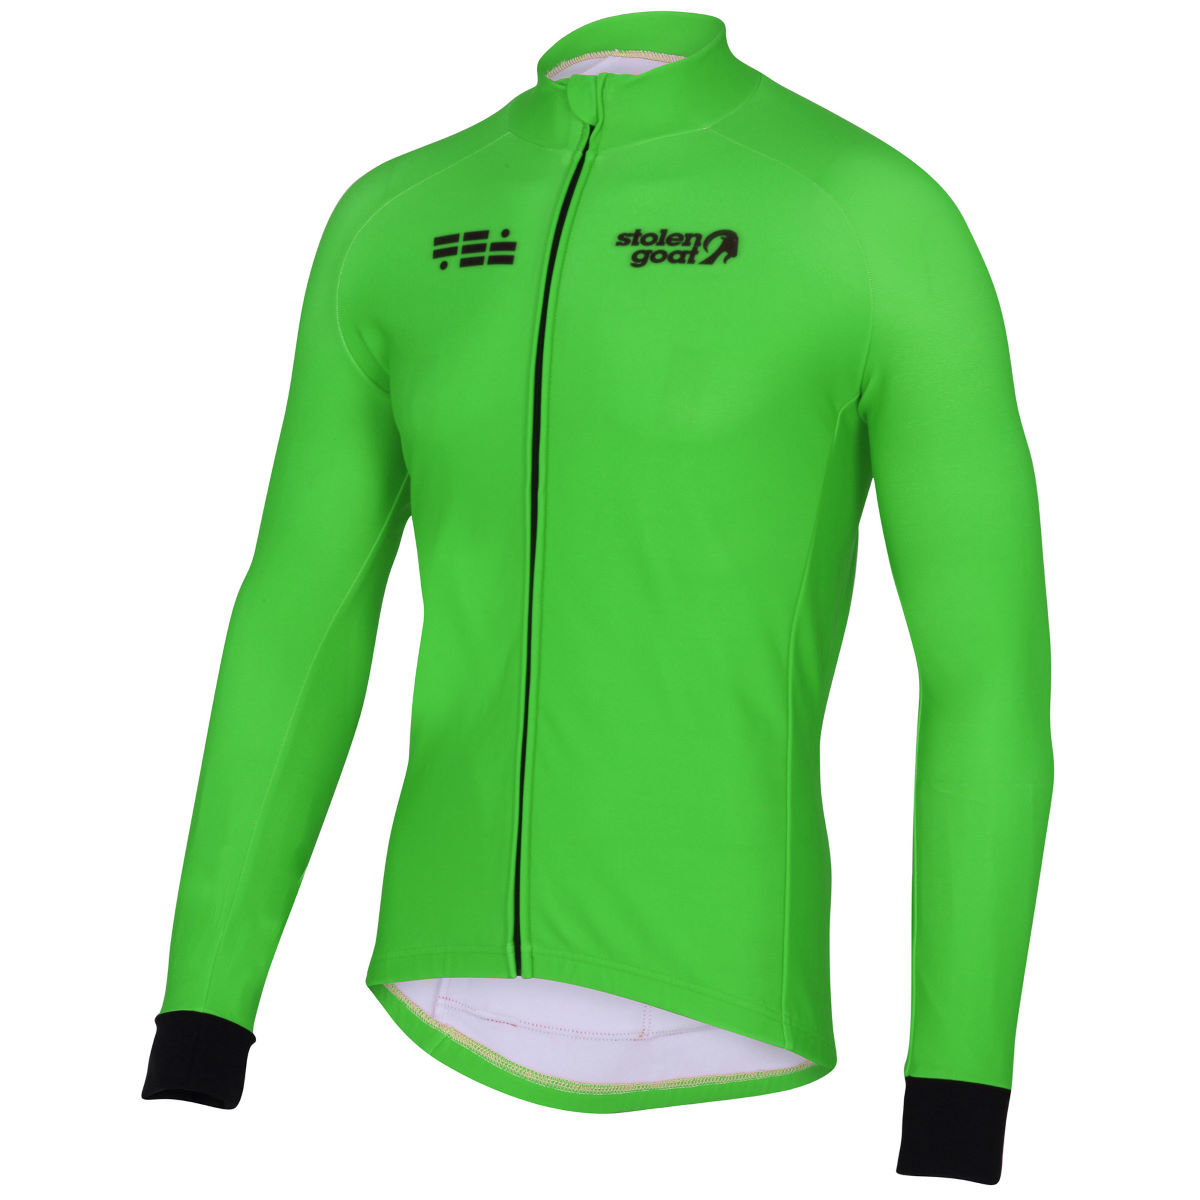 Stolen Goat Orkaan Everyday Long Sleeve Jersey - Small Green